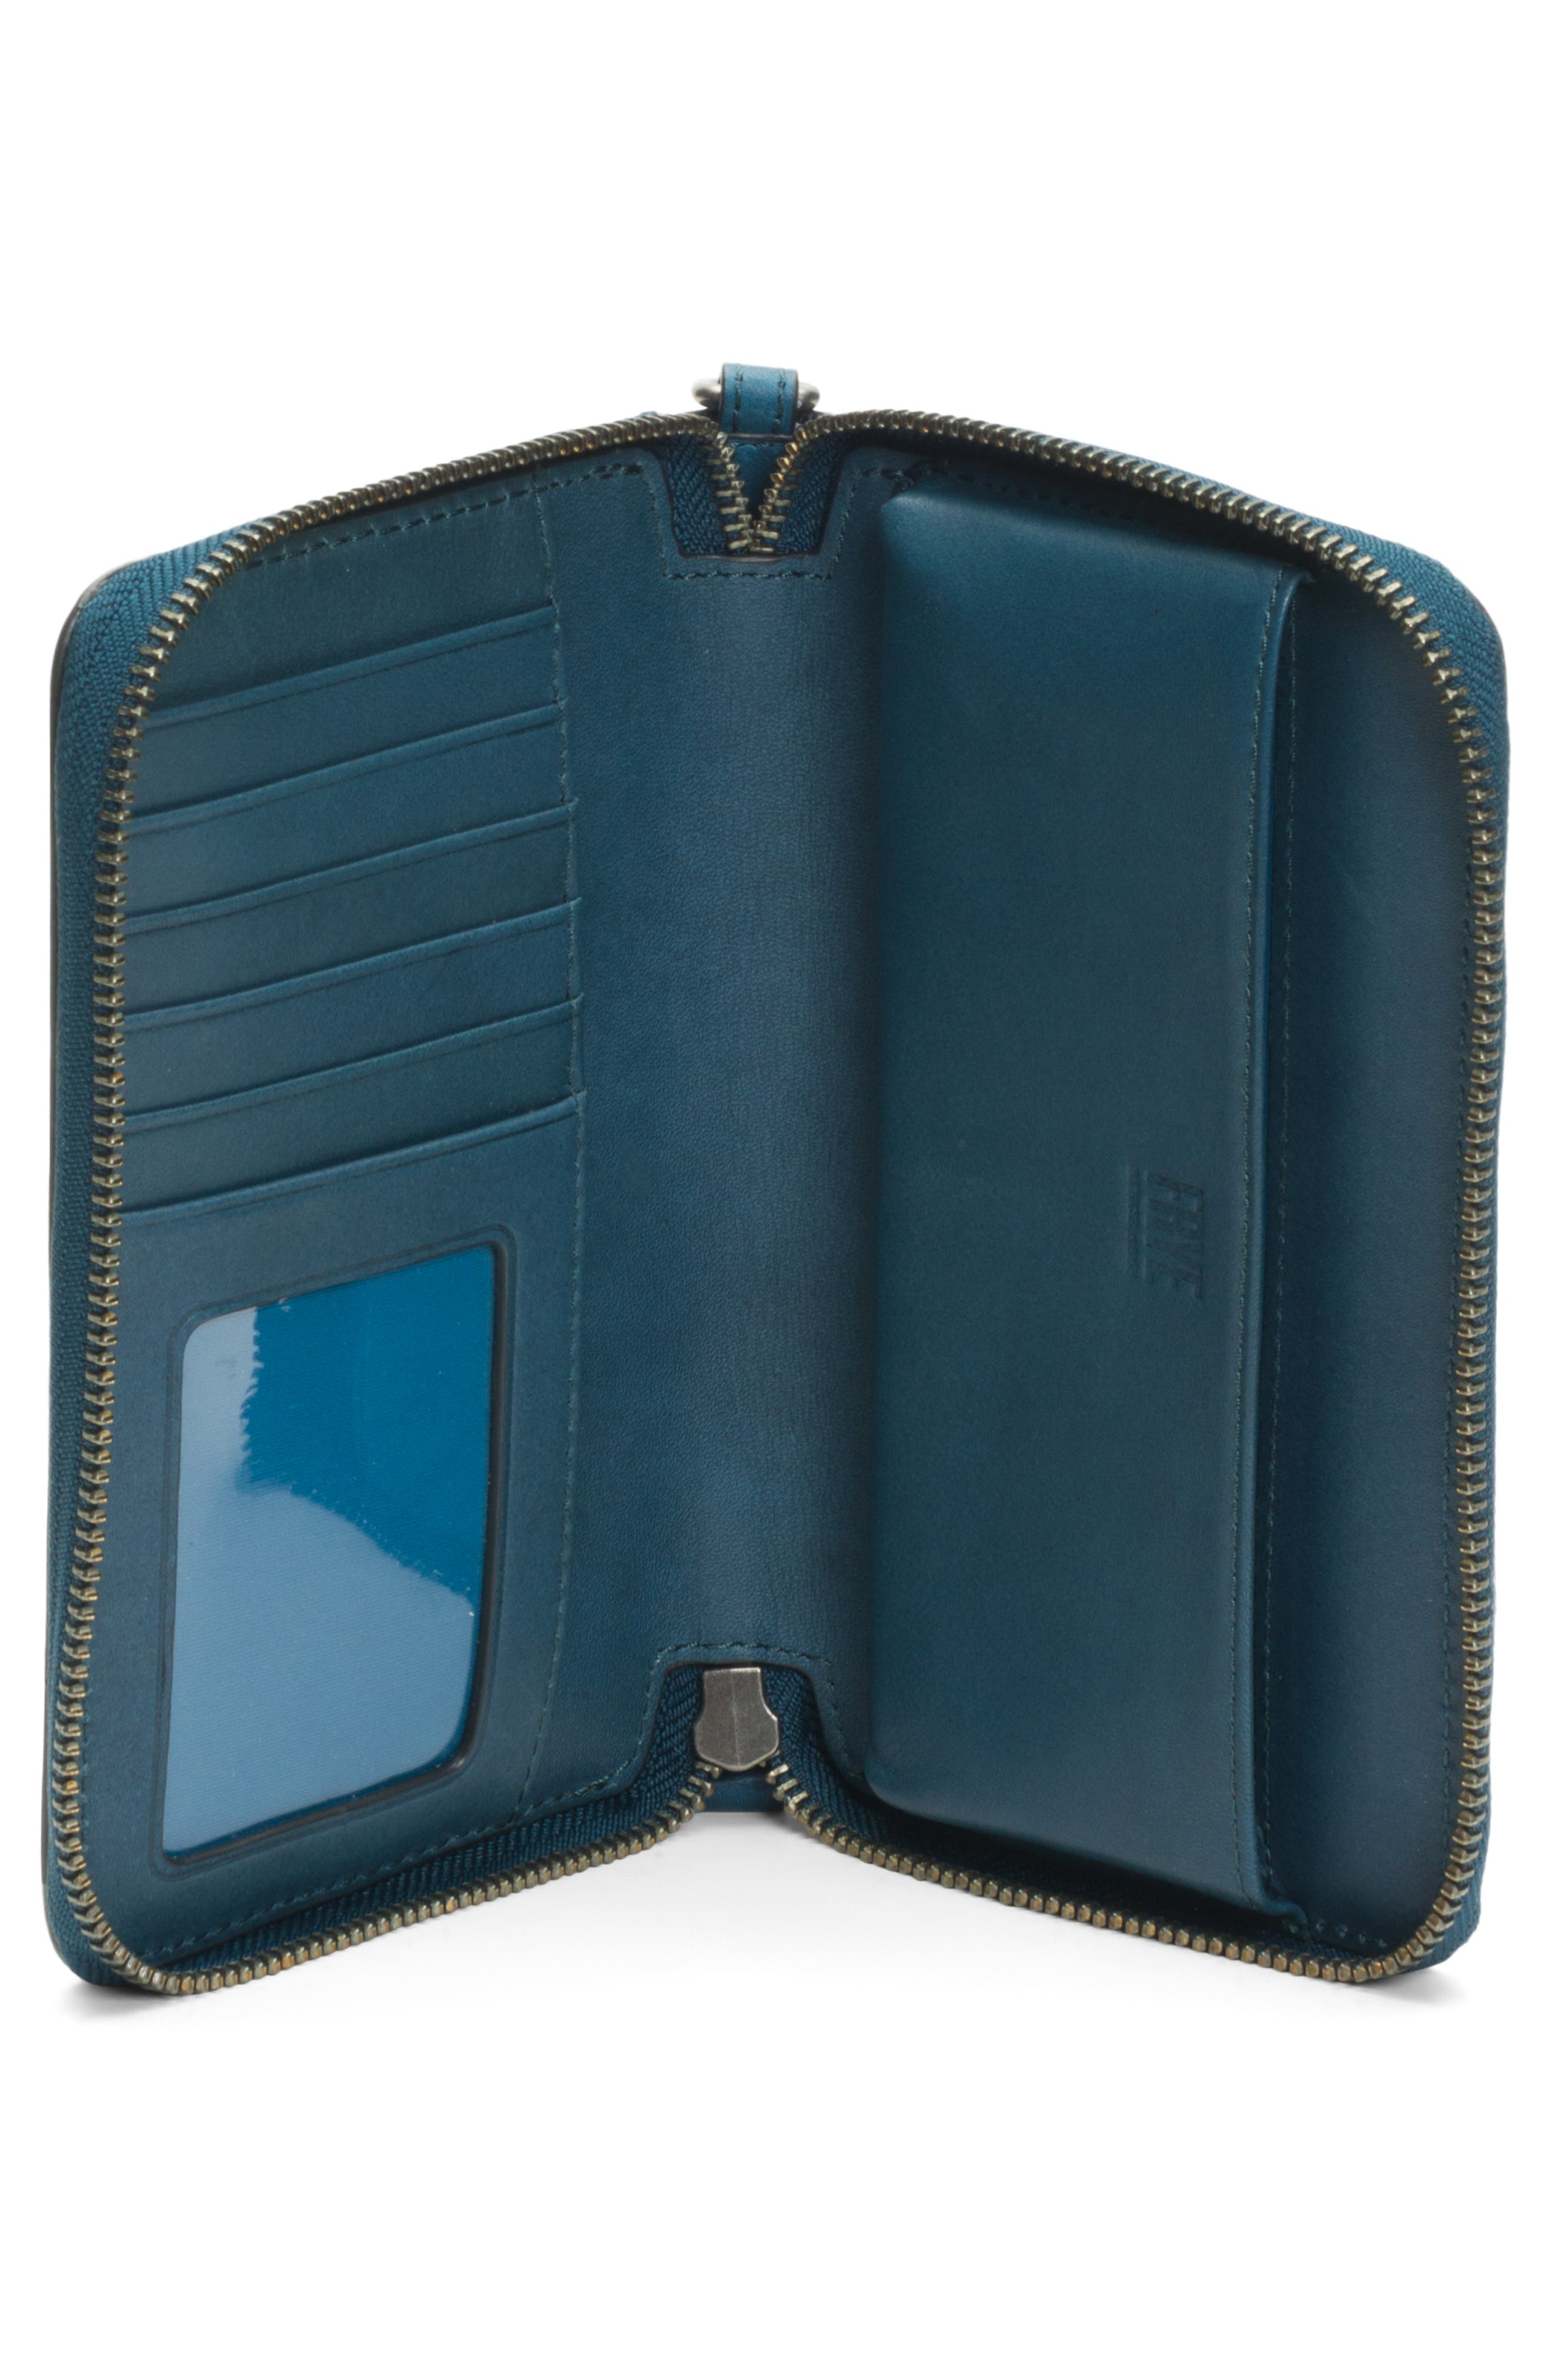 Melissa Large Leather Phone Wallet,                             Alternate thumbnail 4, color,                             PEACOCK